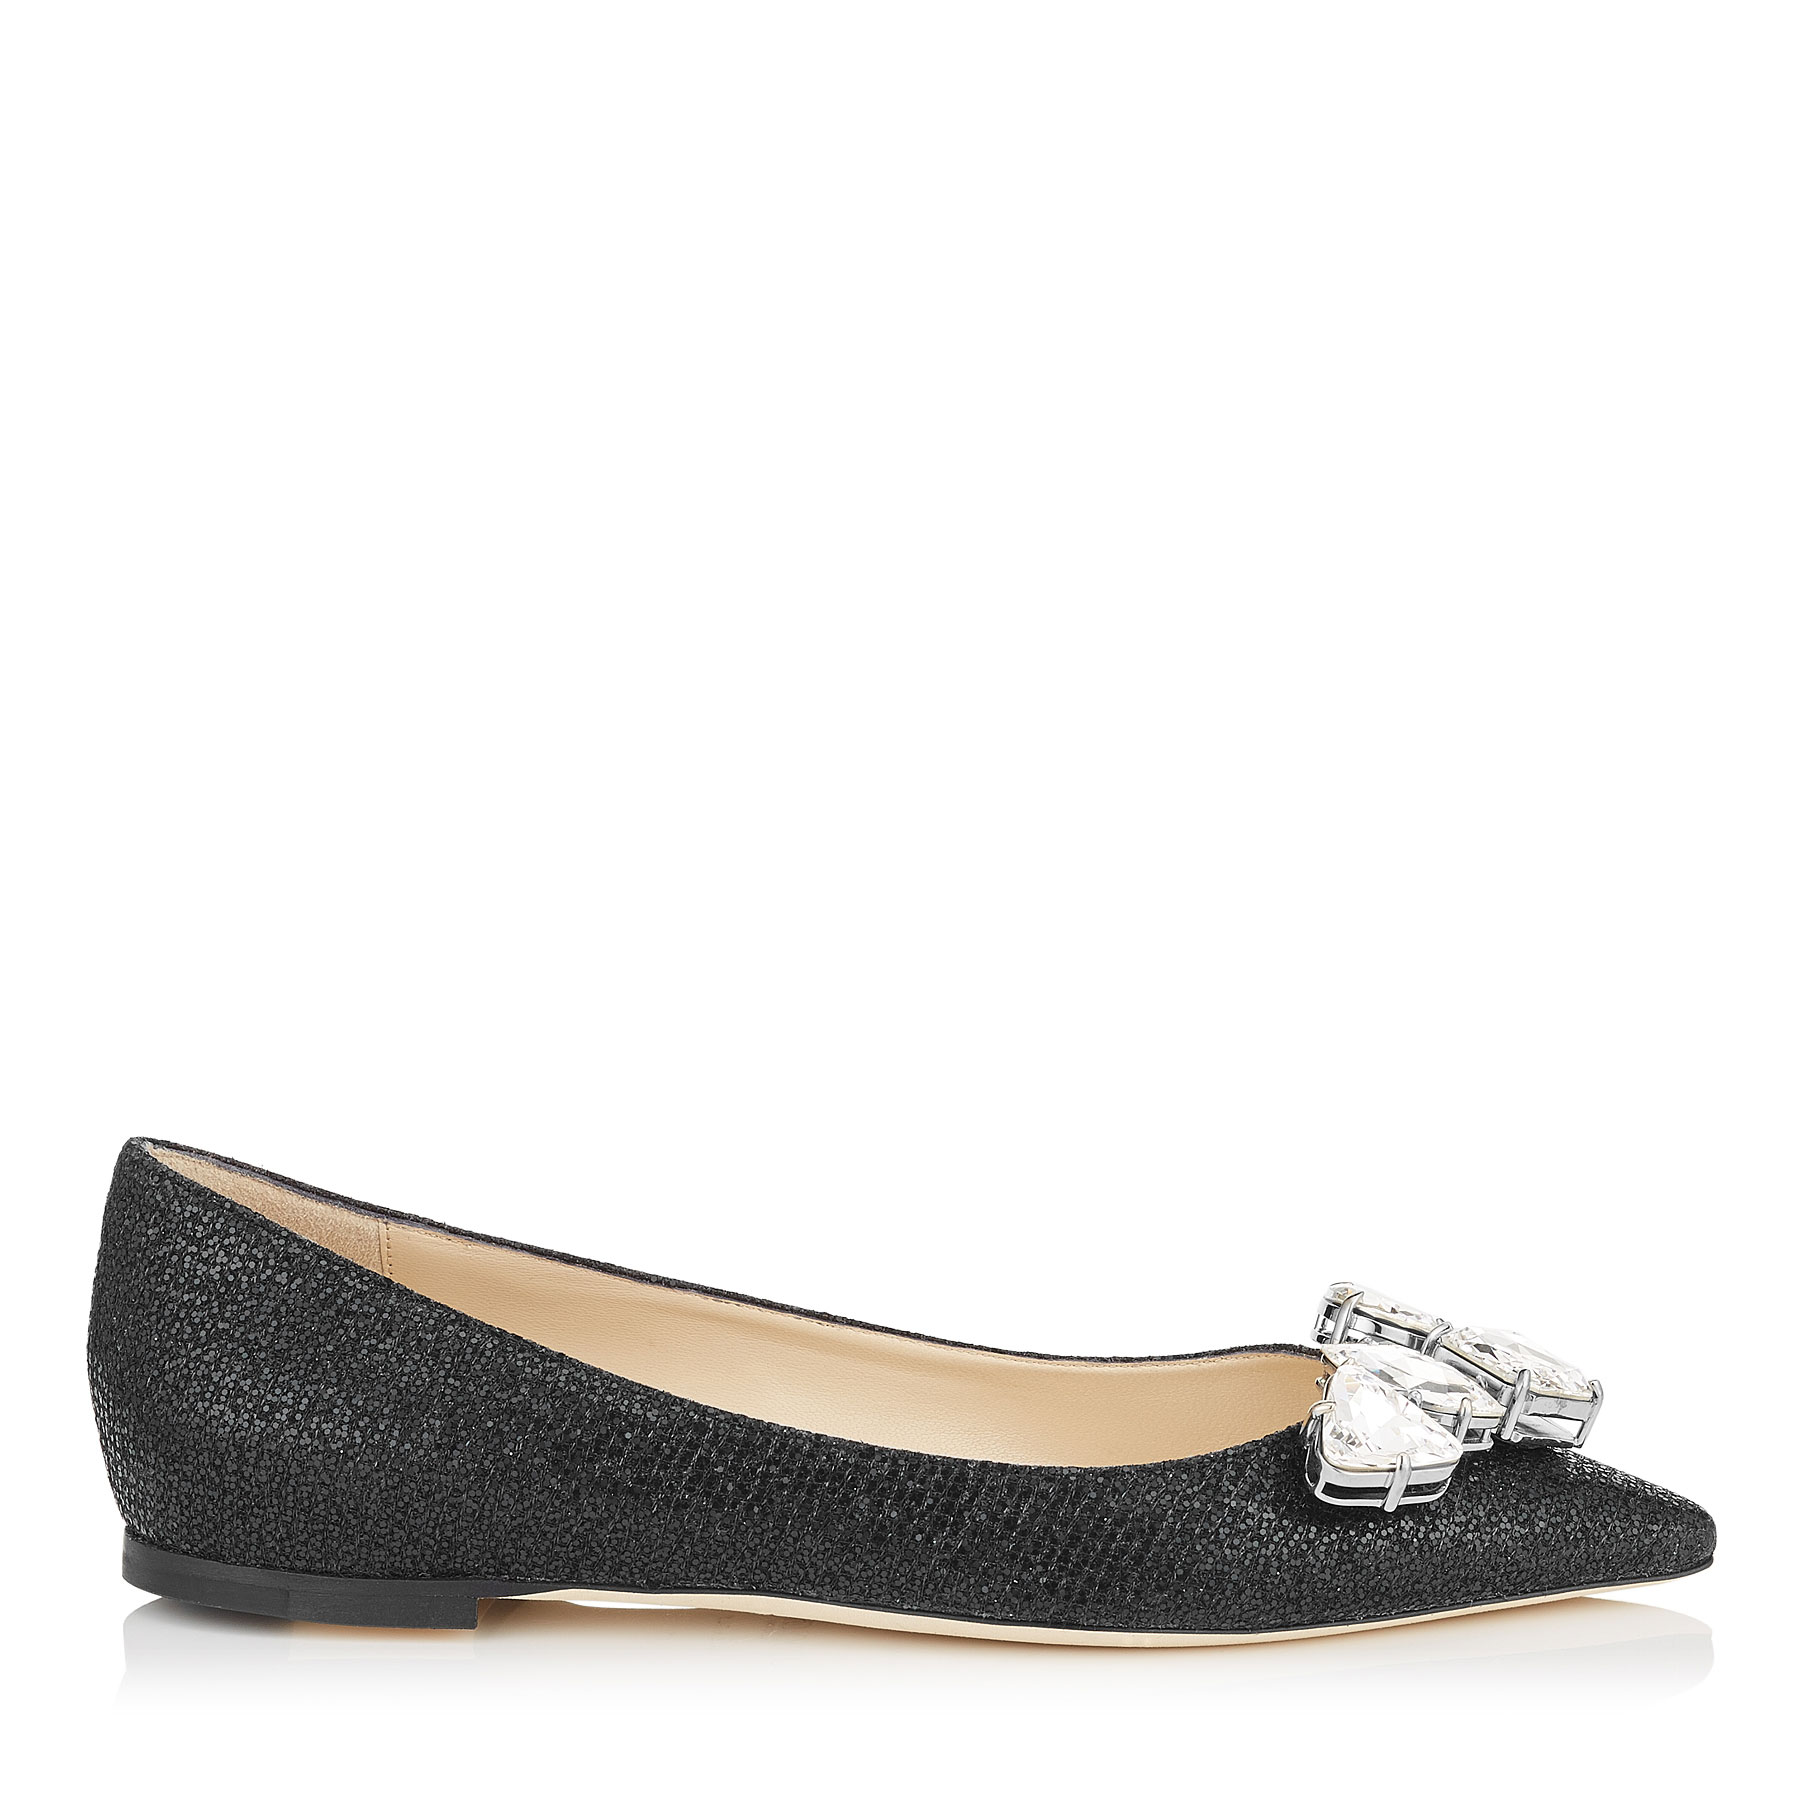 MARVEL FLAT Black Glitter Fabric Pointy Toe Flats with Crystal Piece by Jimmy Choo